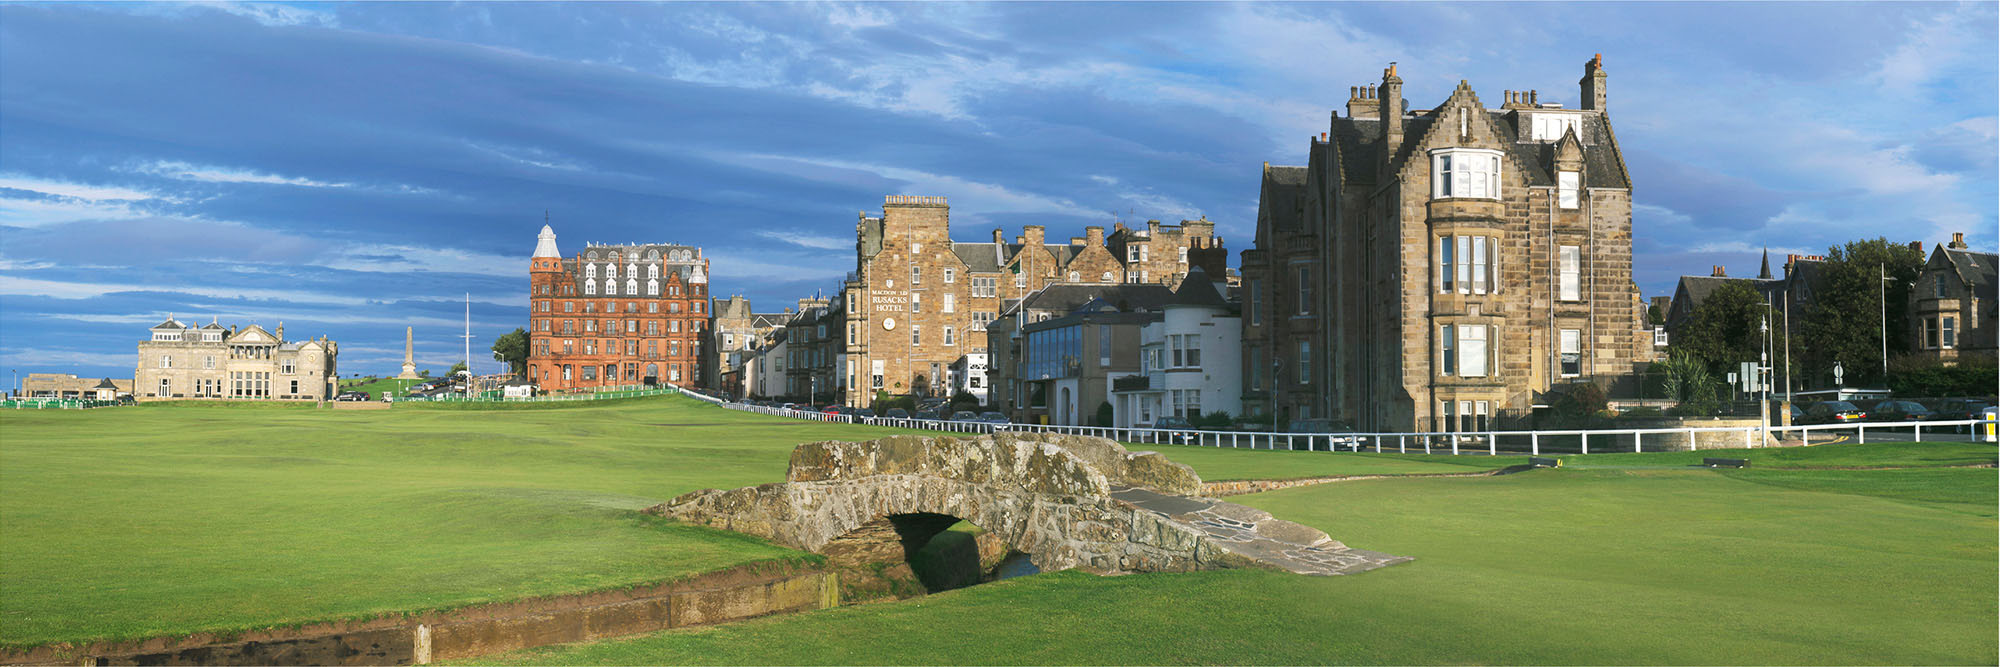 Golf Course Image - St Andrews Swilcan Bridge